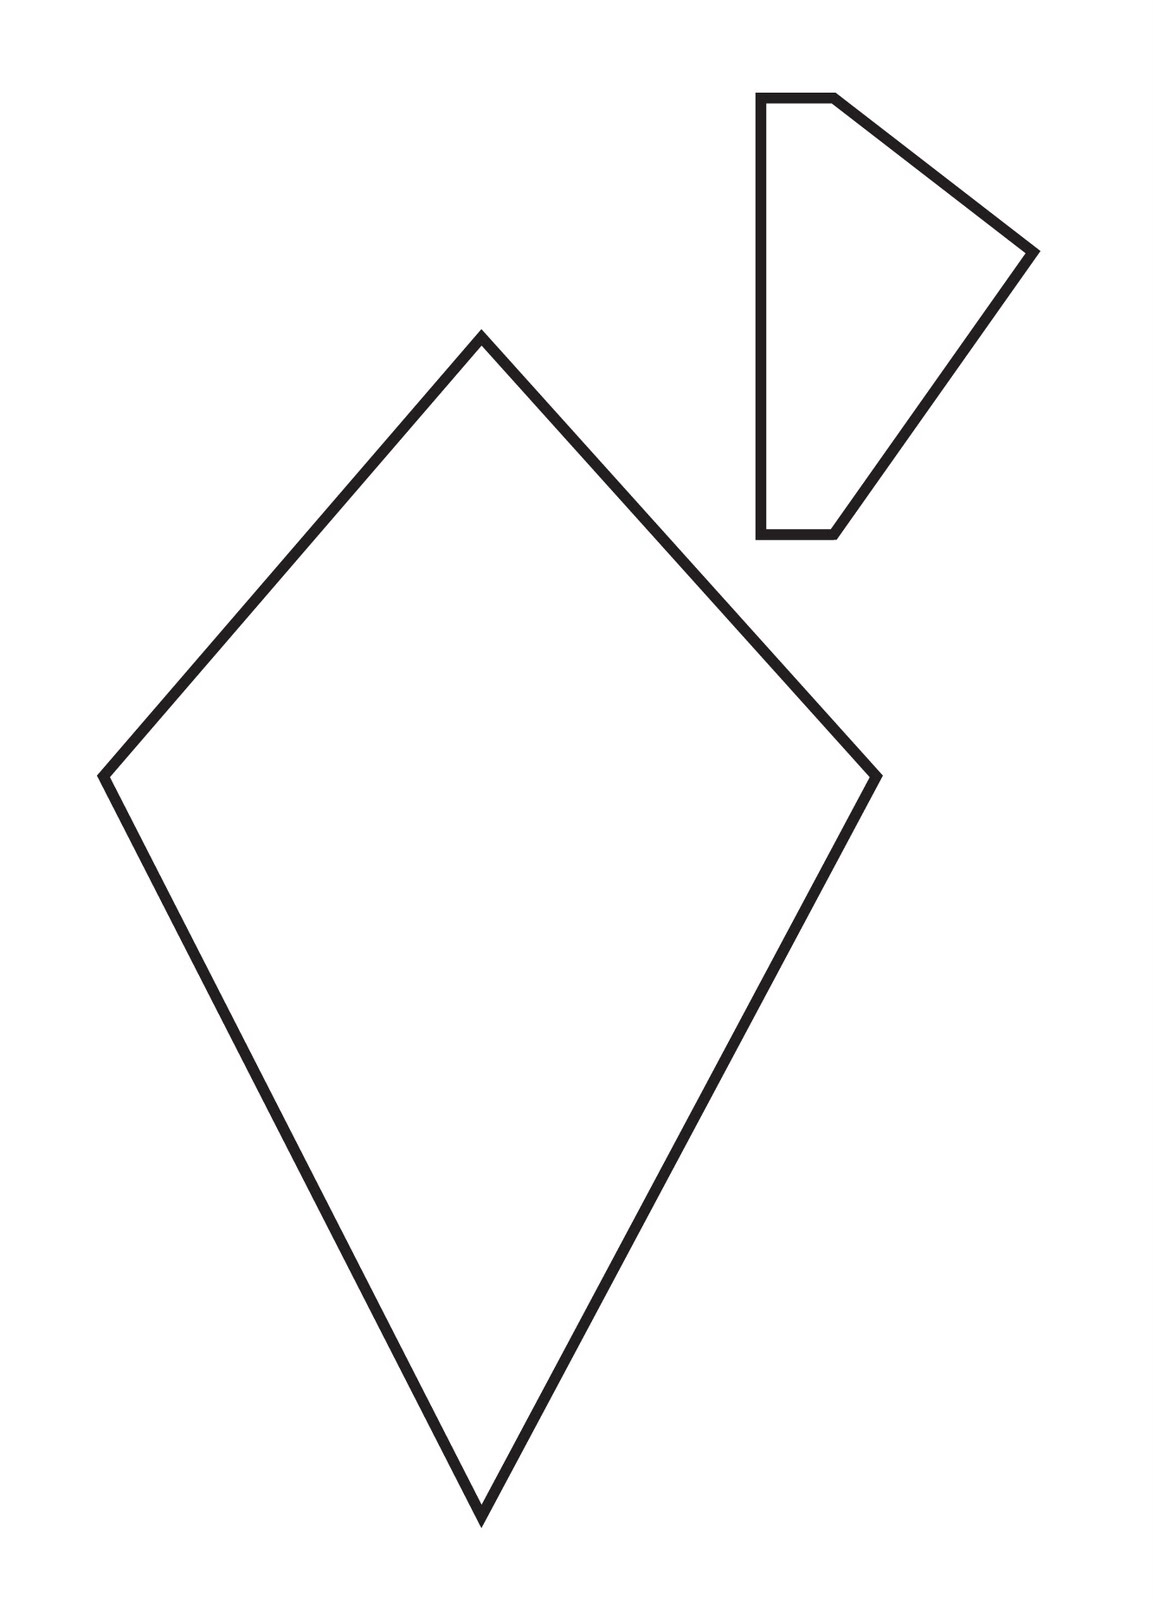 Kite Black And White Kite Outline With Clipart Coloring 2